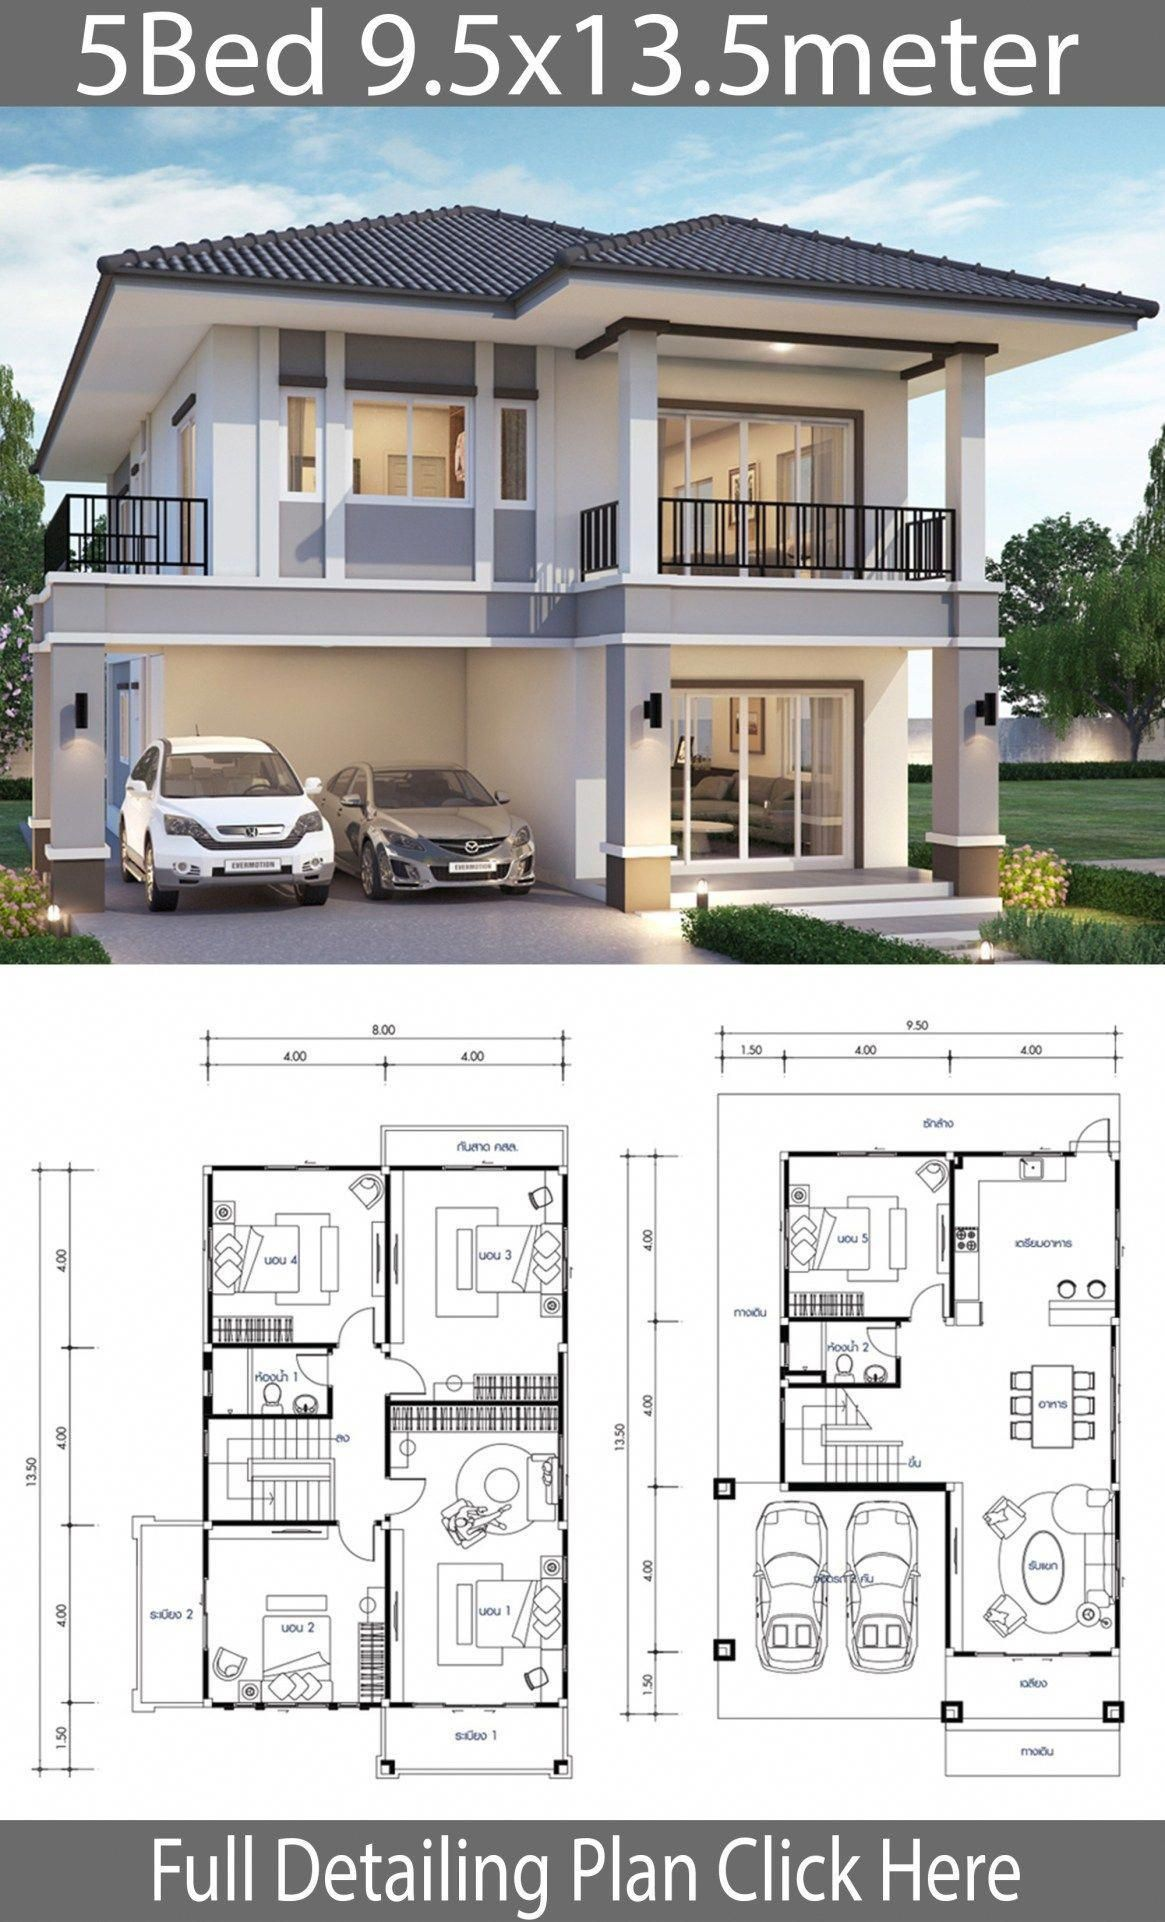 5 Free Diy Tiny House Plans To Help You Live The Small Duplex House Design Beautiful House Plans Modern House Plans